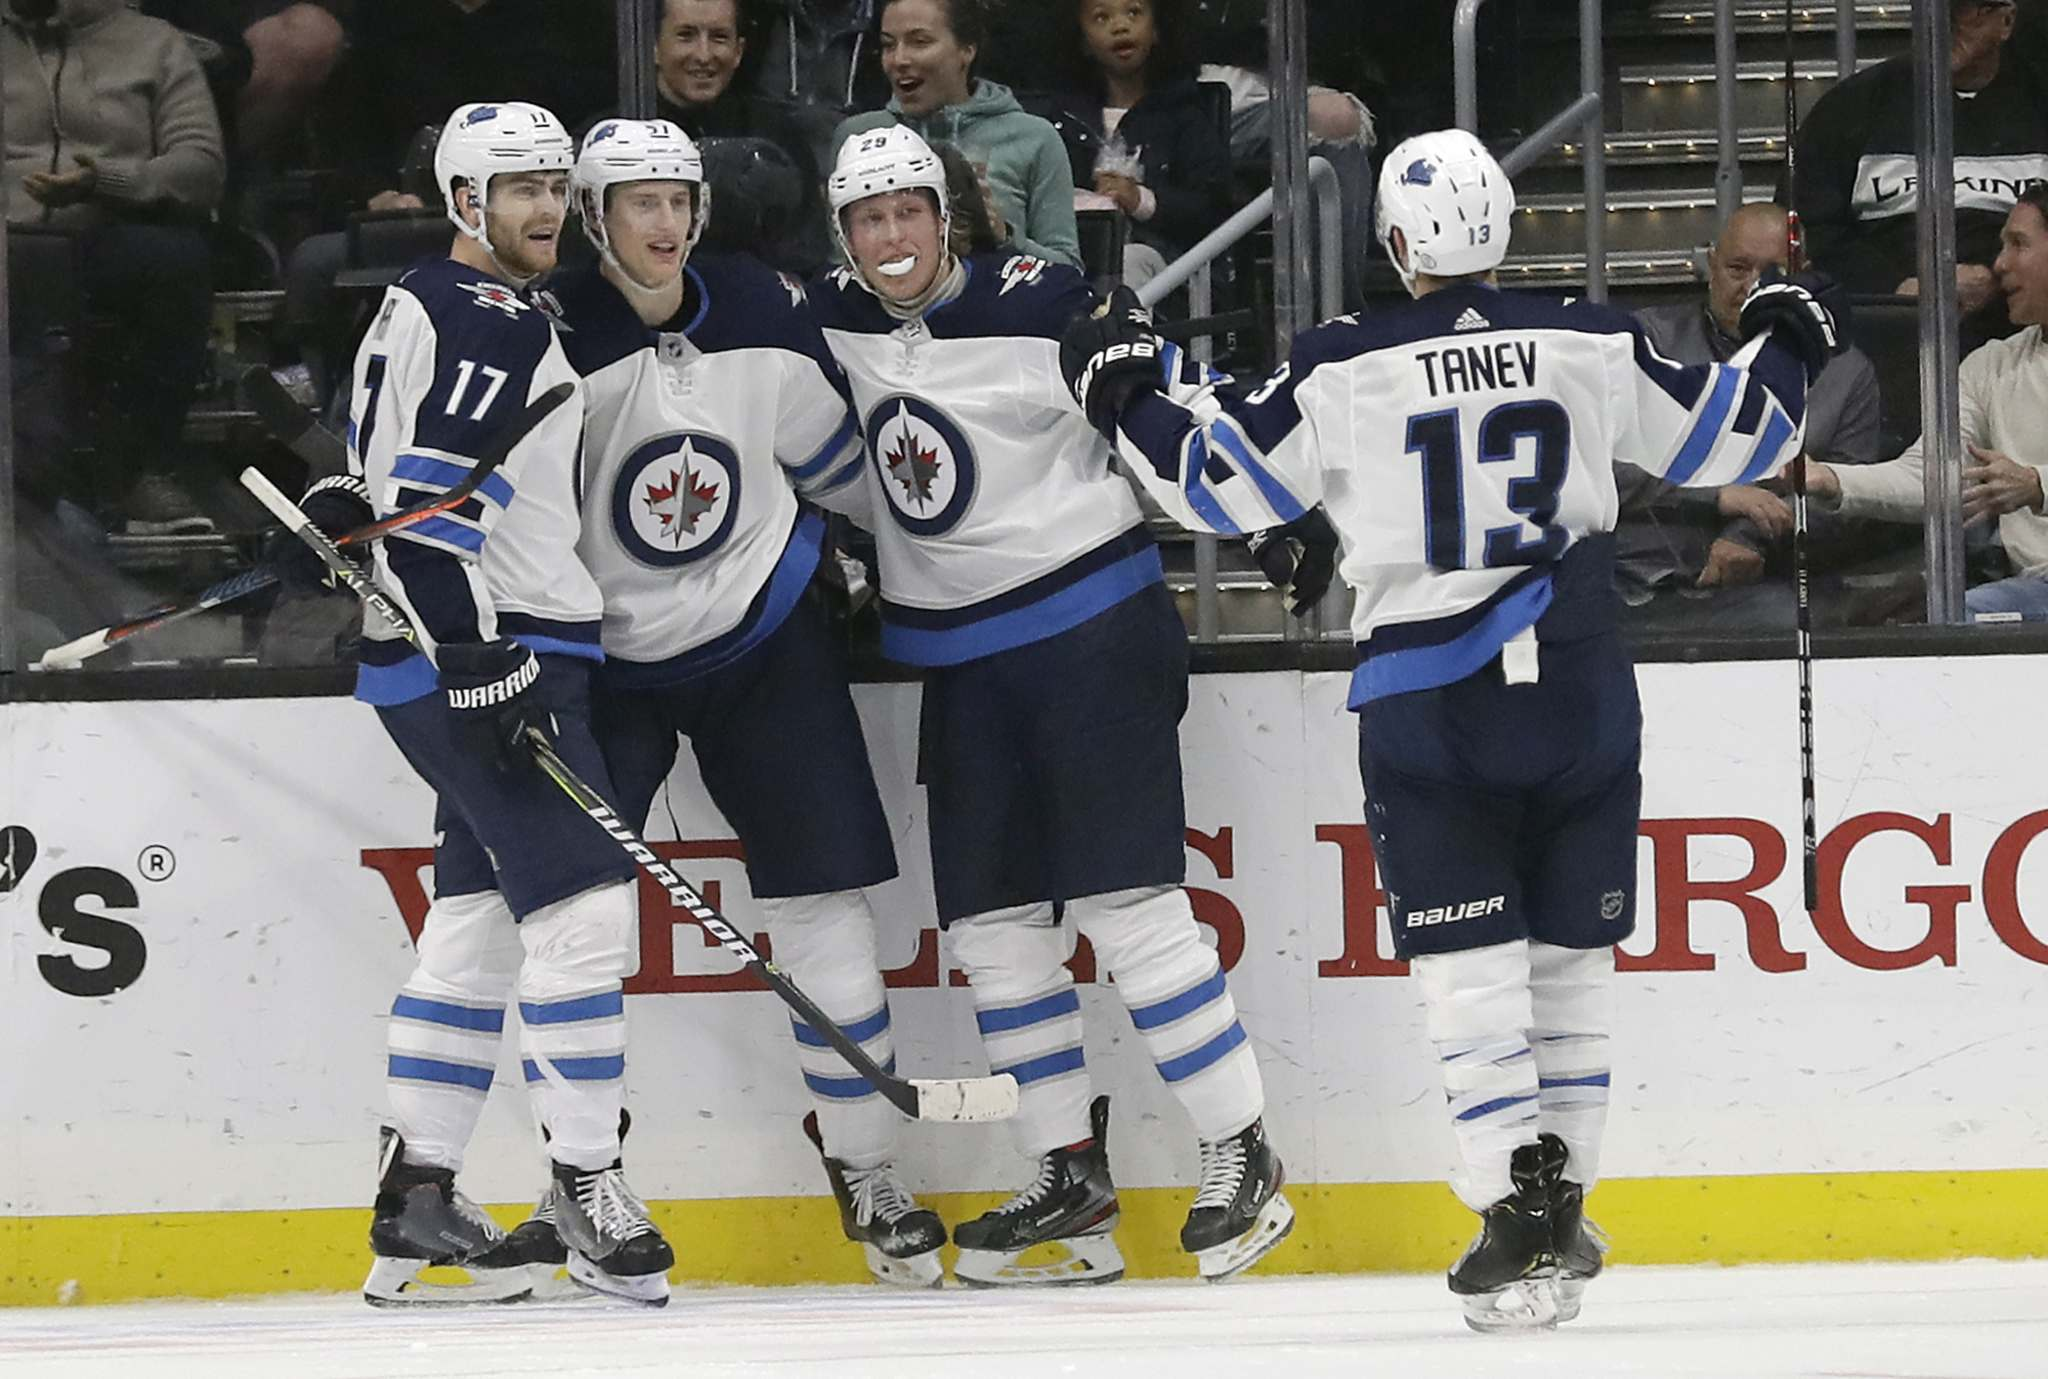 Myers, second from left, celebrates his goal with teammates Adam Lowry, left, Patrik Laine, centre, and Brandon Tanev during the game against the Los Angeles Kings Monday. (Jose Sanchez / The Associated Press)